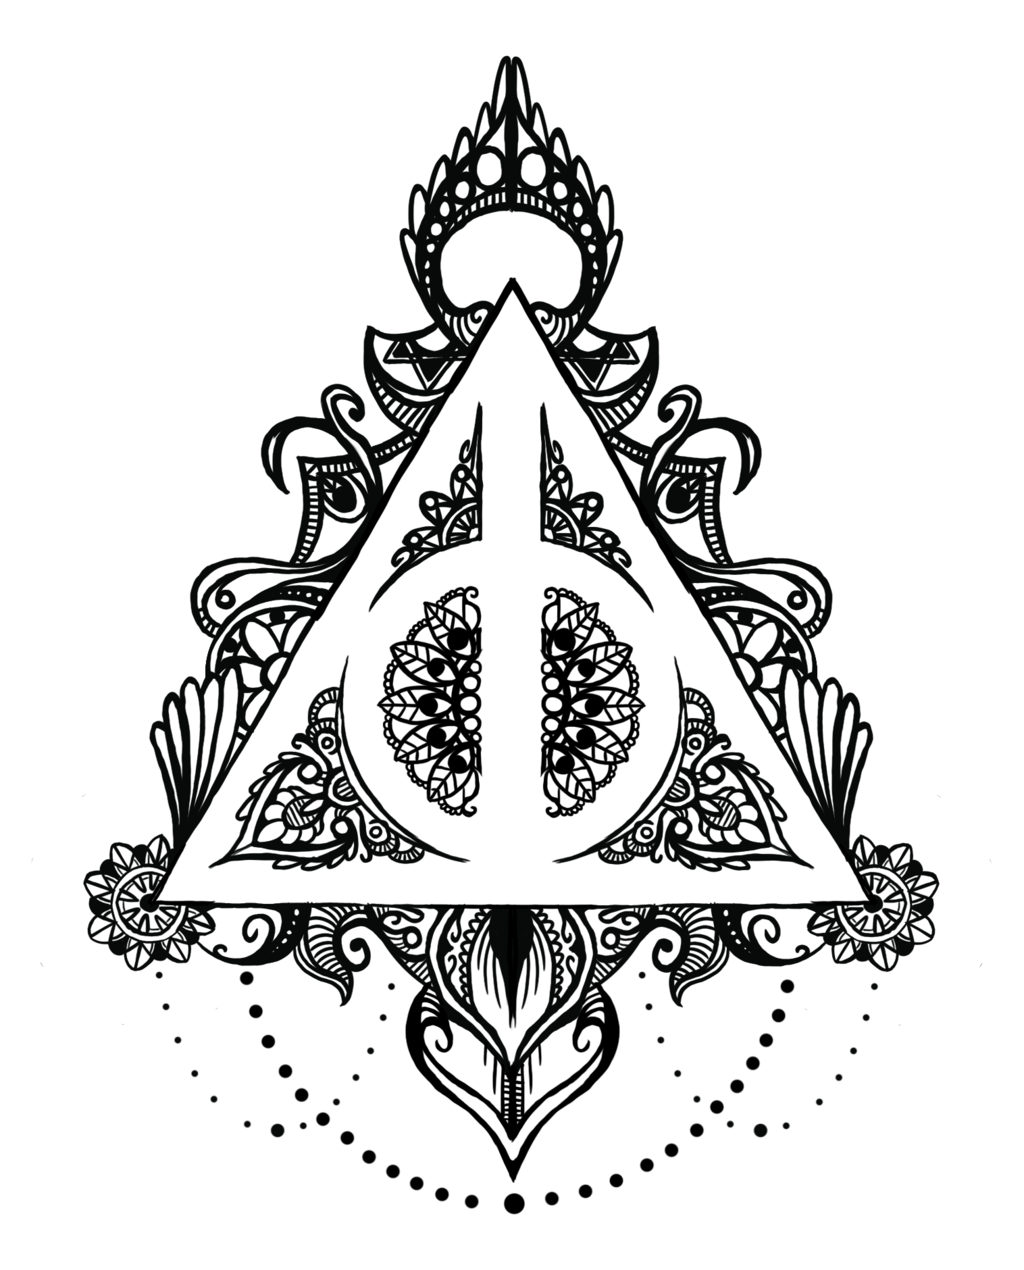 Image Result For Deathly Hallows Mandala Herz Tattoo Bedeutung Harry Potter Tattoos Harry Potter Zeichen